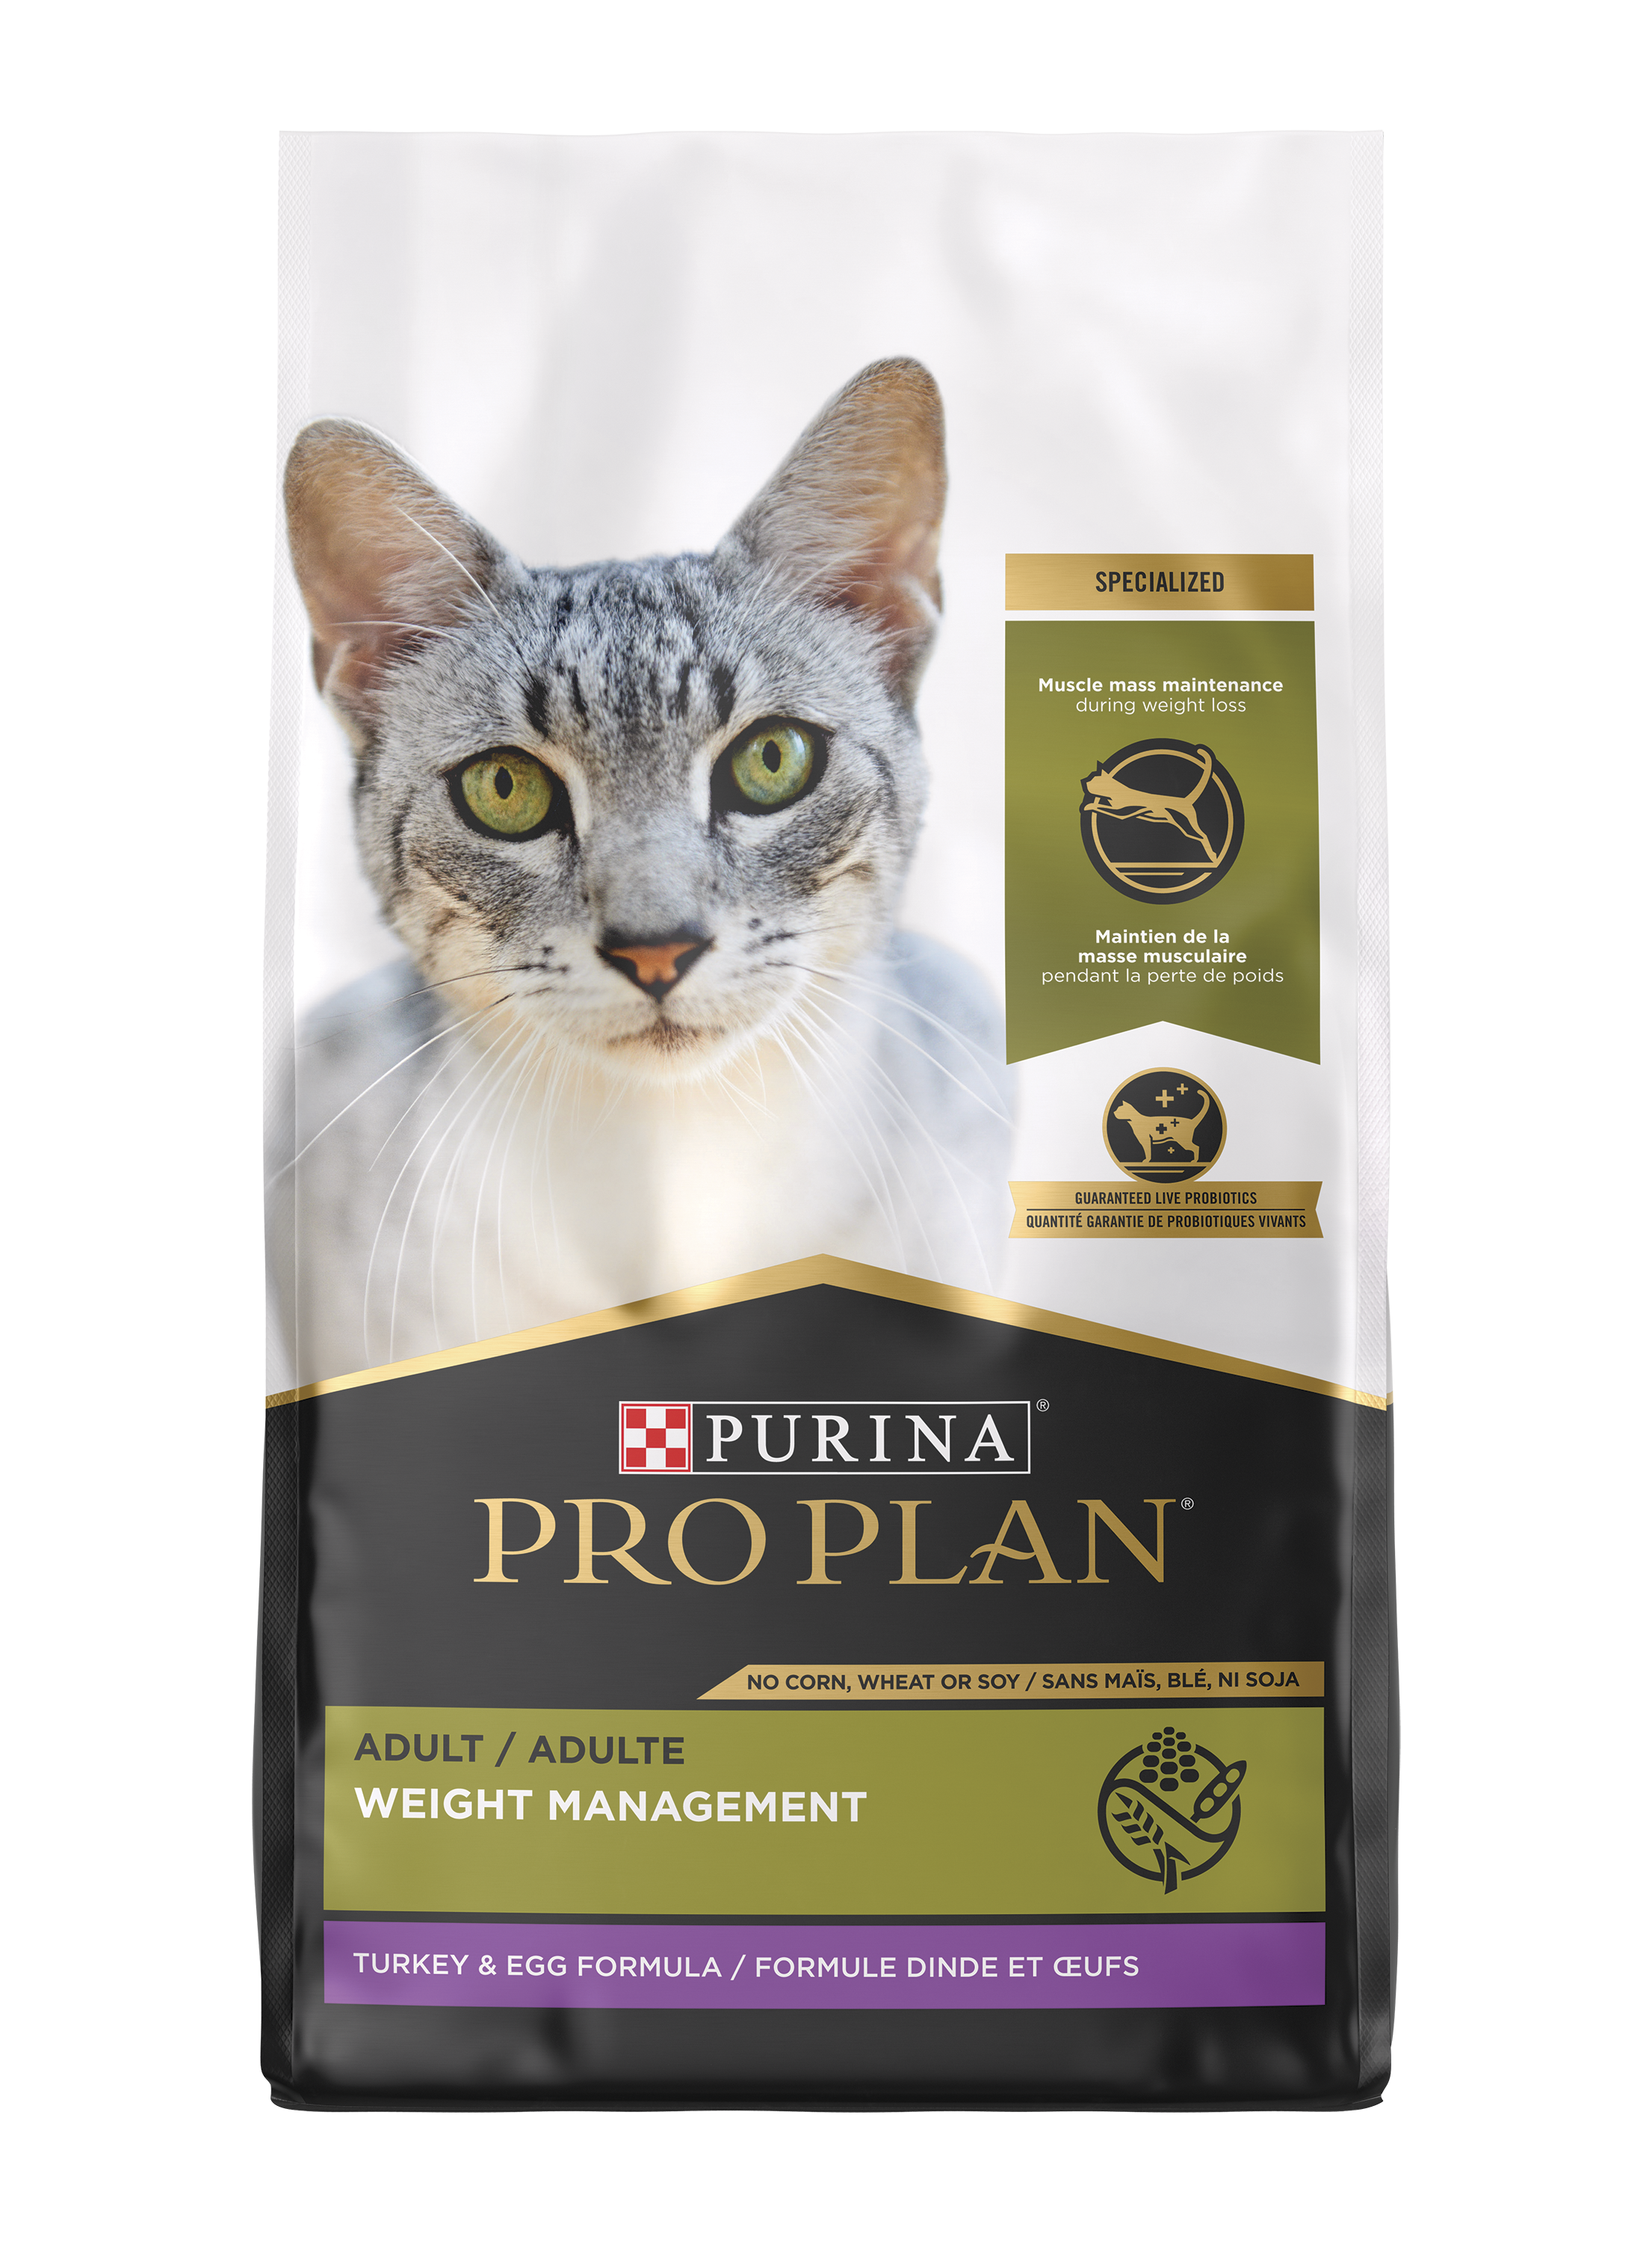 Purina Pro Plan Specialized Weight Management Turkey & Egg Formula